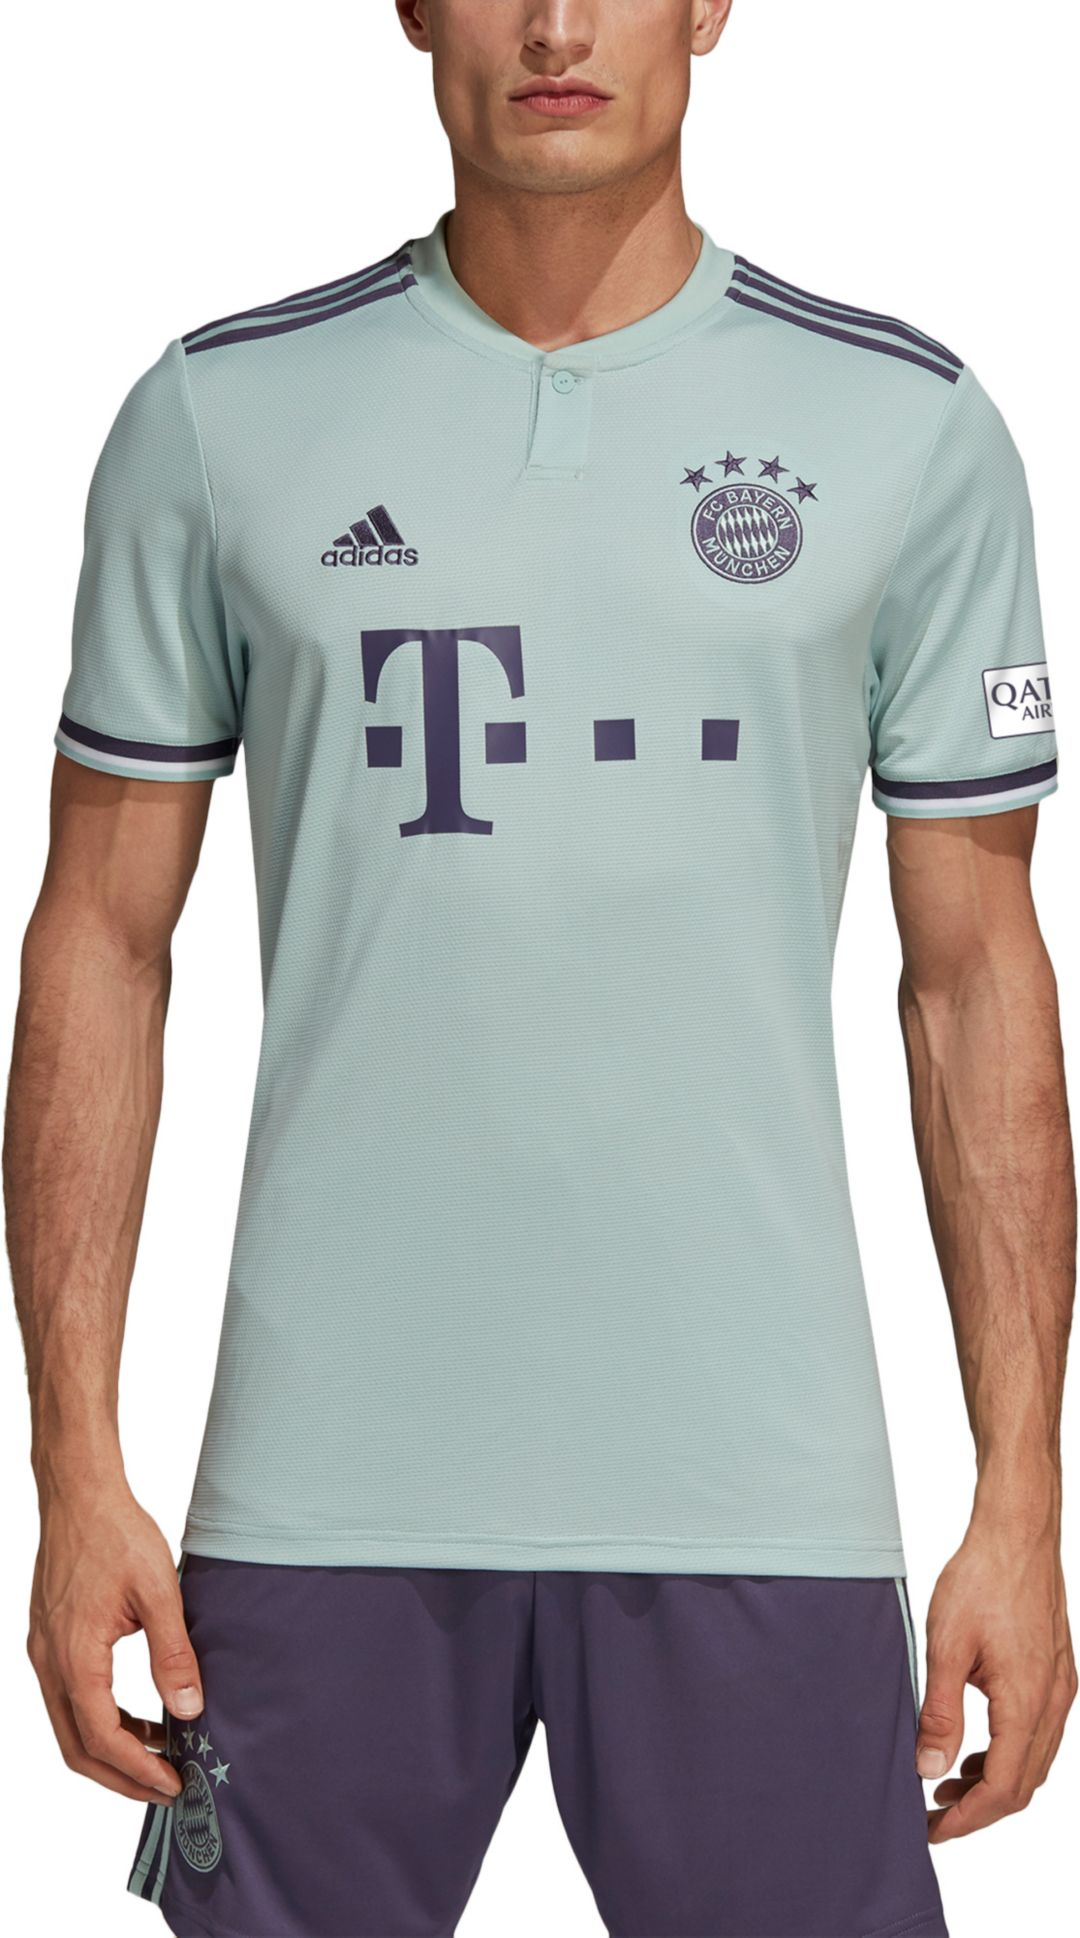 6c846135068 adidas Men's Bayern Munich 2018 Stadium Away Replica Jersey | DICK'S ...